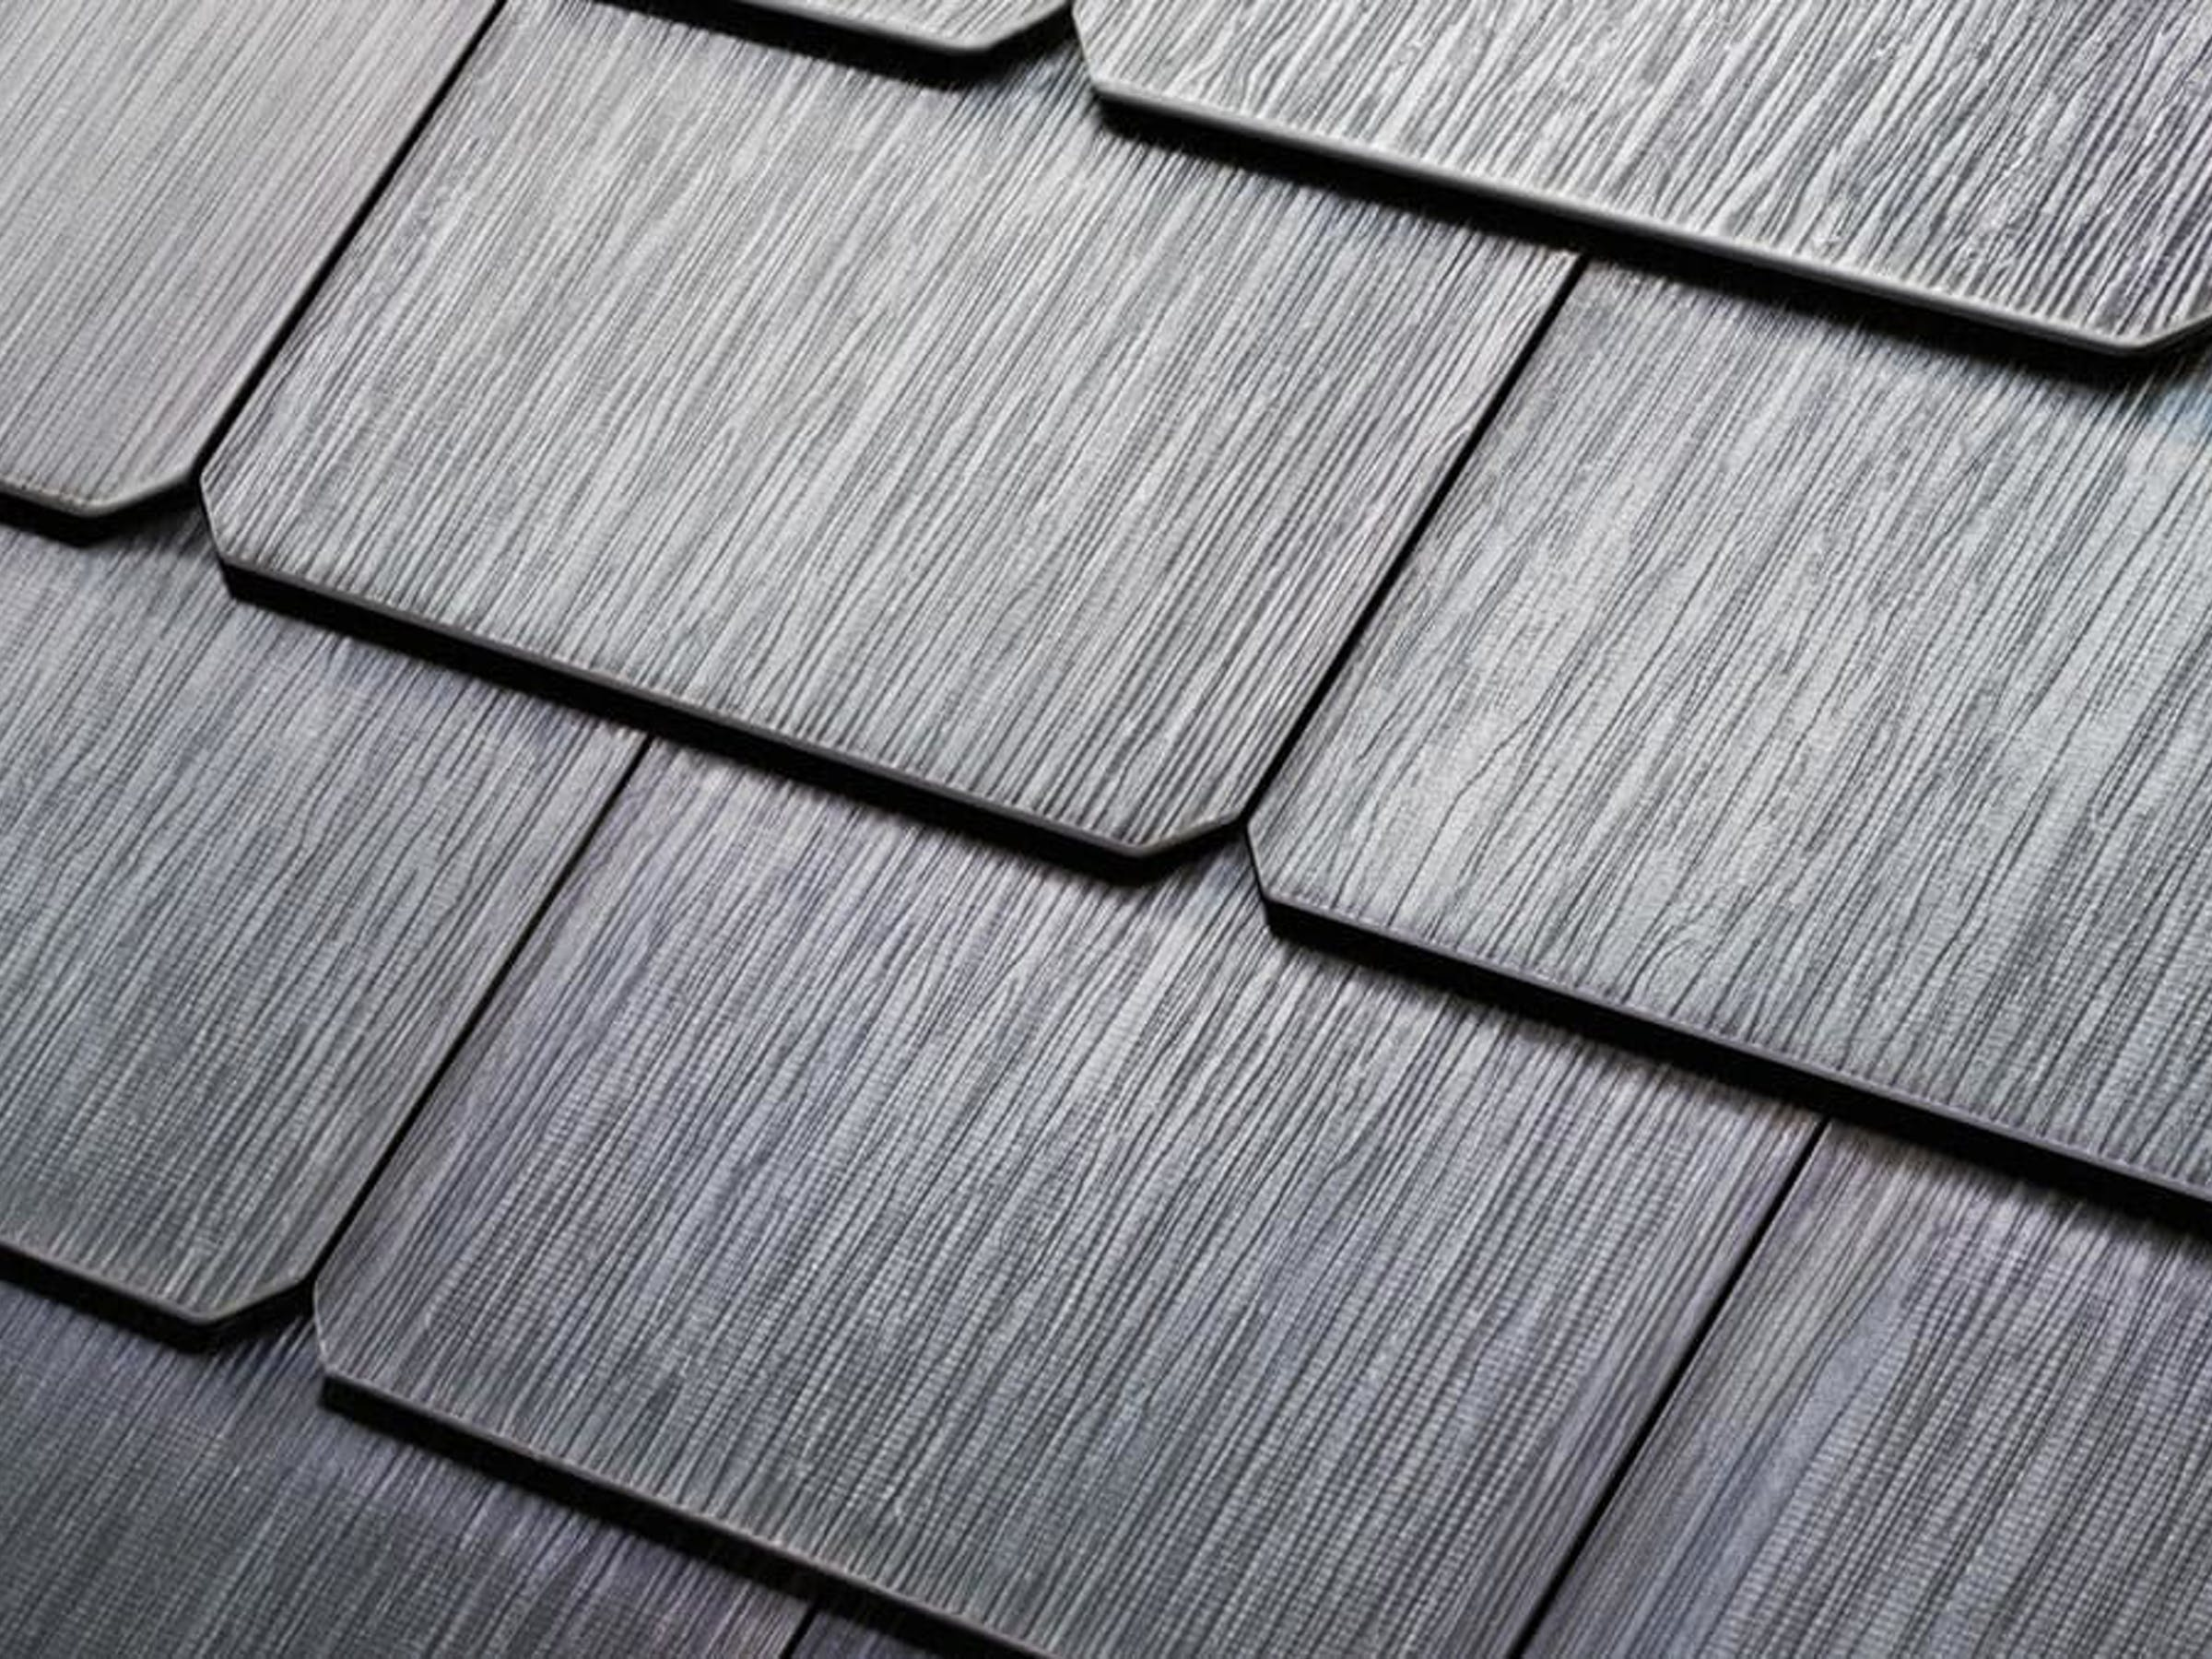 Tesla Solar Roof Shingles >> Tesla Solar Roof 9 Things You Don T Realize Until You Own One For A